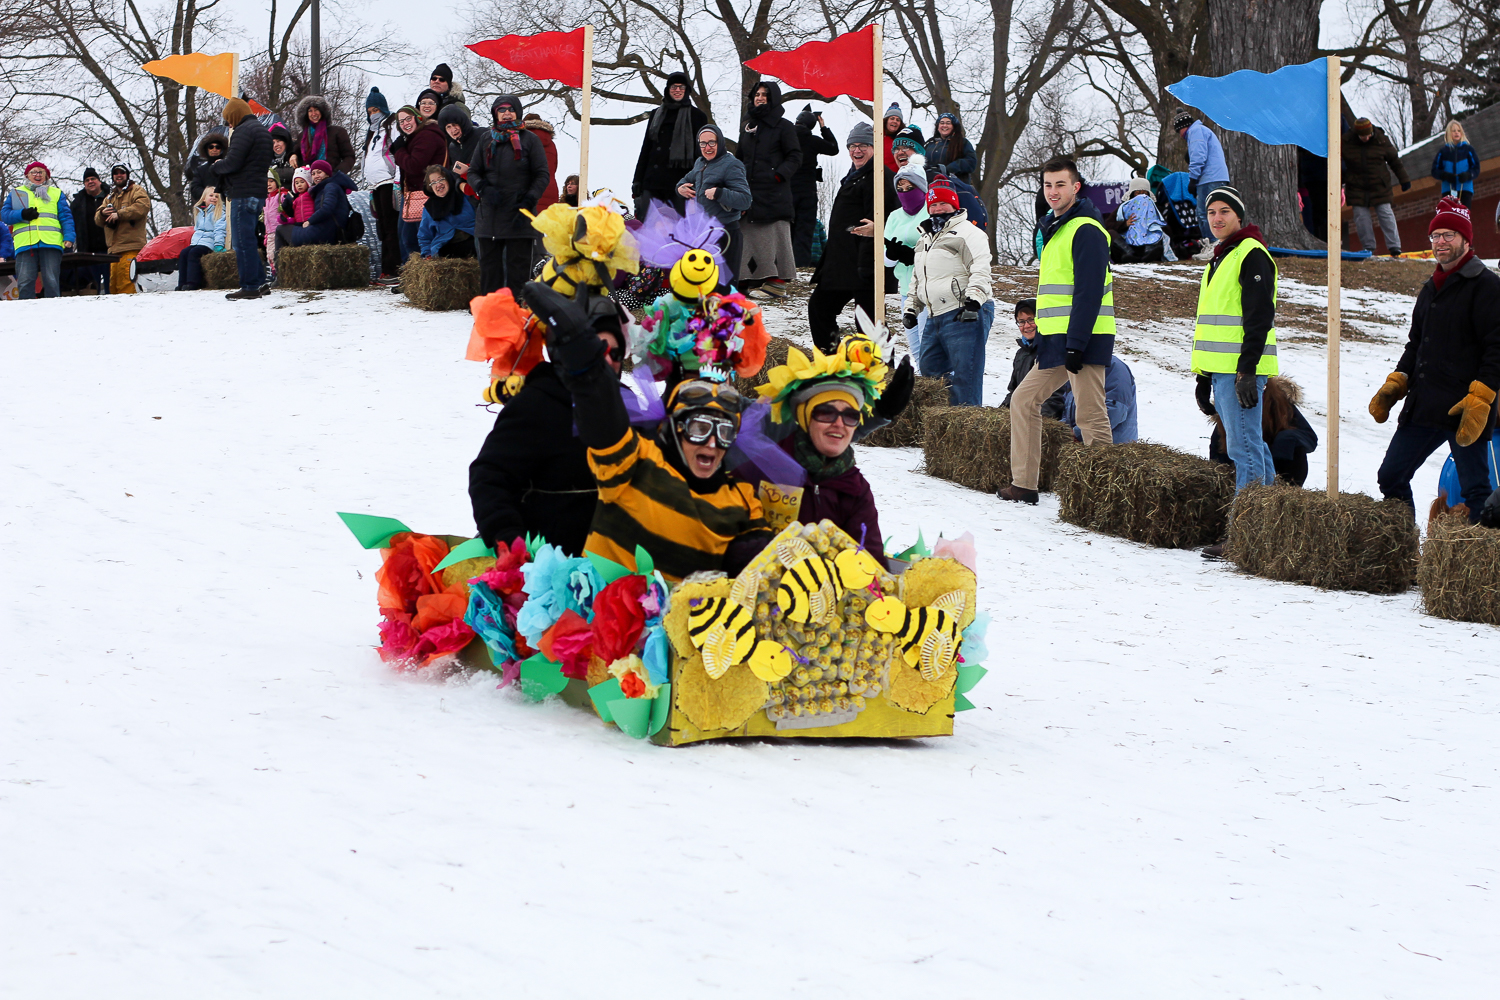 Art Sled Rally at Powderhorn Park in Minneapolis